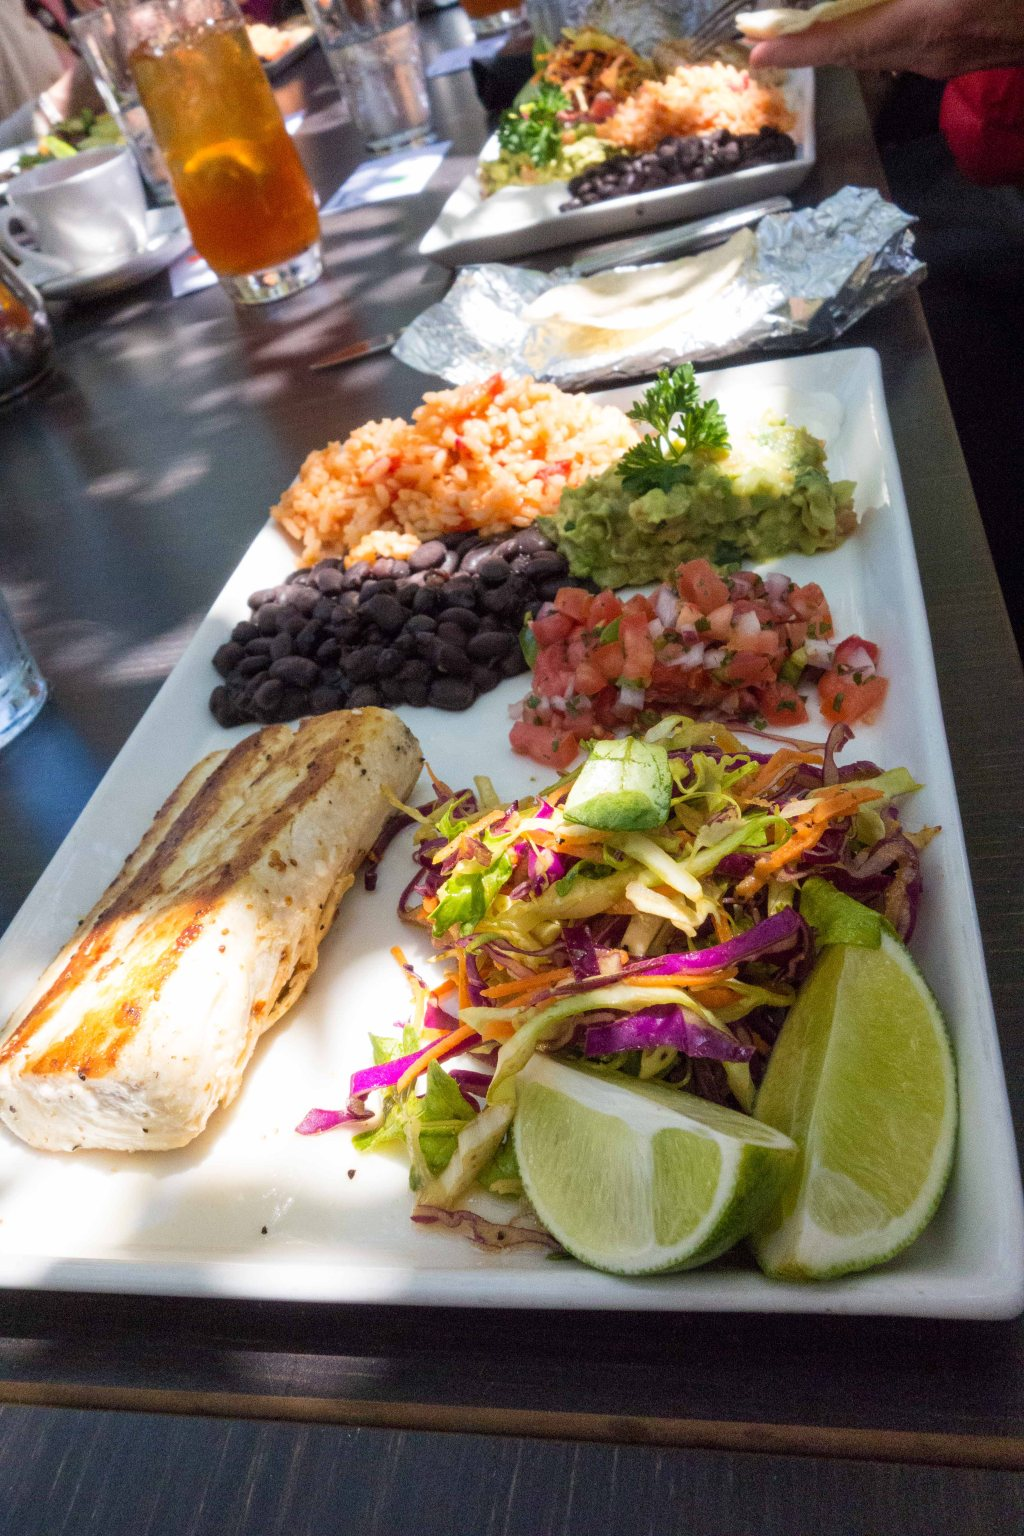 All the fixings for a fish taco, you just have to do the work for yourself